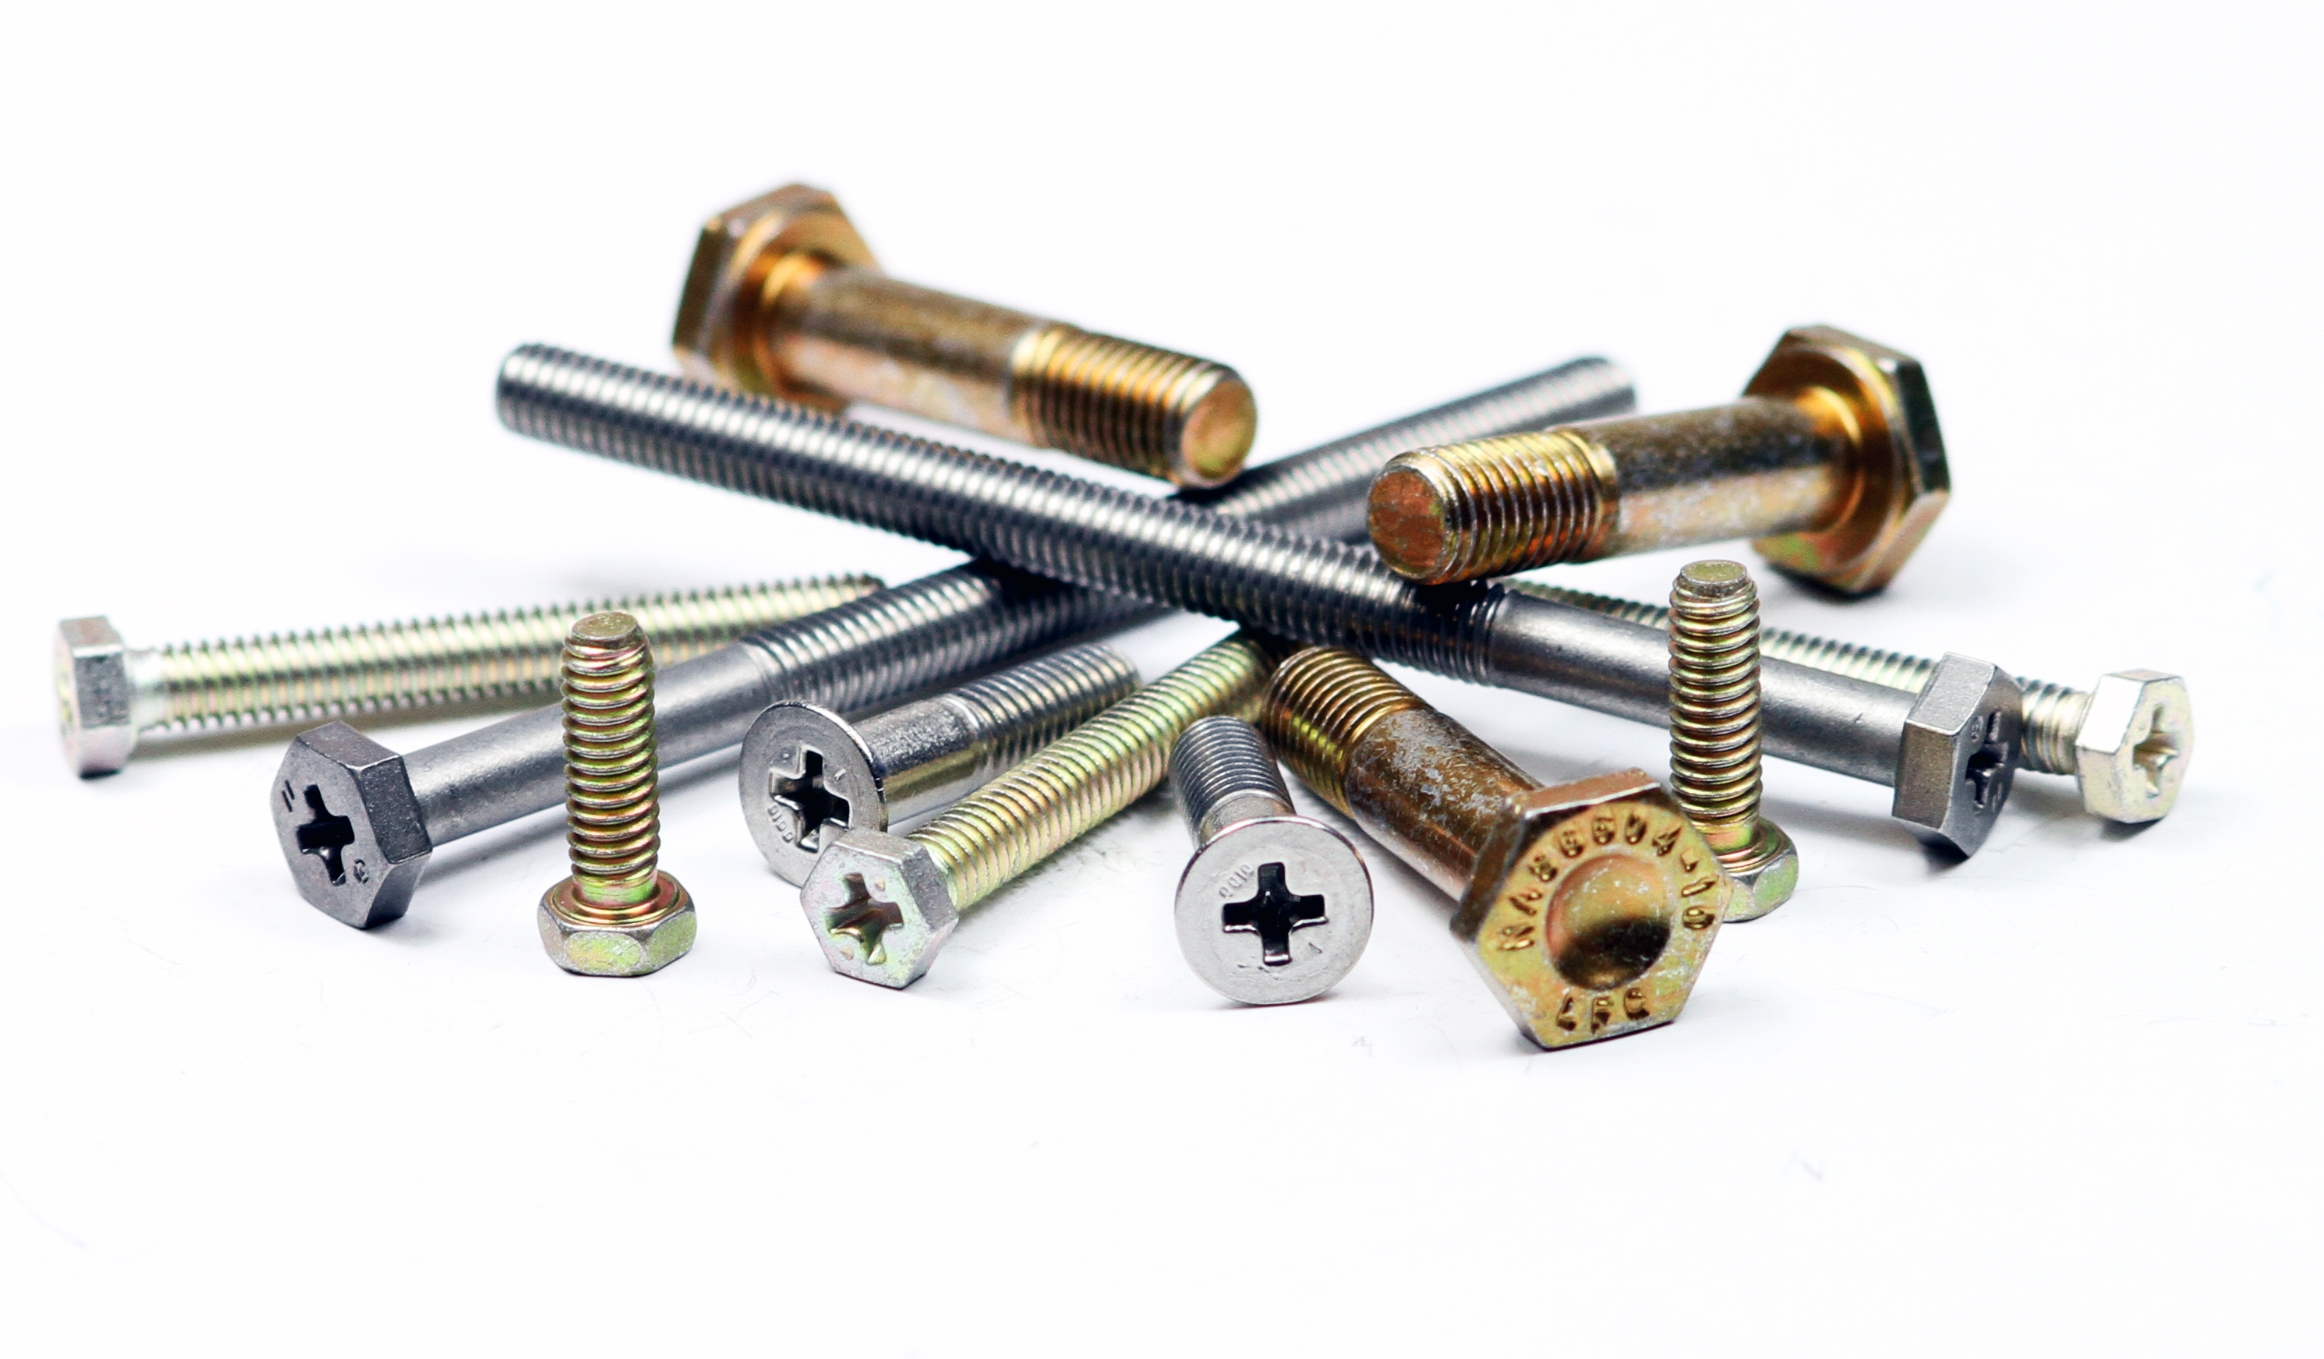 Aerospace Bolts & Screws, US & EU standards, LN & EN specs